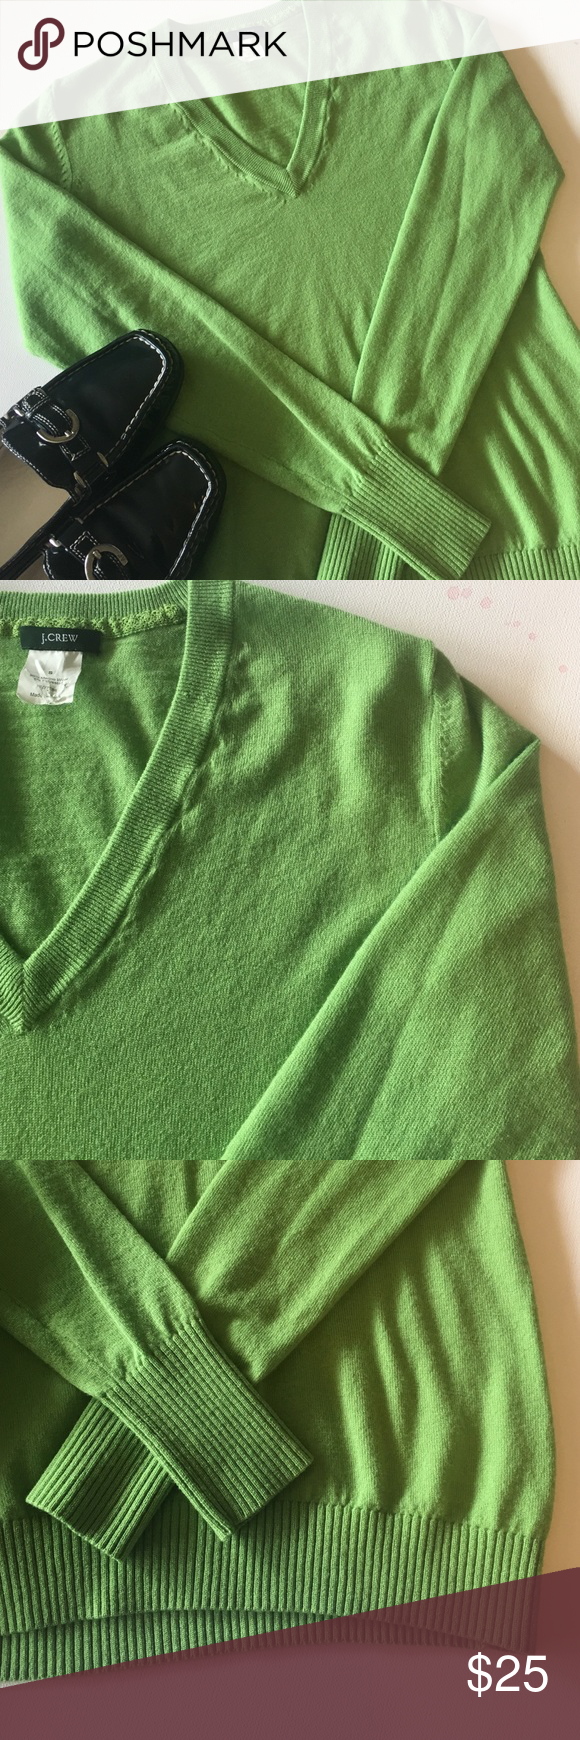 J. Crew V-Neck Sweater Great pop of lime green color for these upcoming spring days will be having. Sophisticated and classy! In very good condition, minor flaw top of neckline seen in pic #2- can hardly notice it. J. Crew Sweaters V-Necks